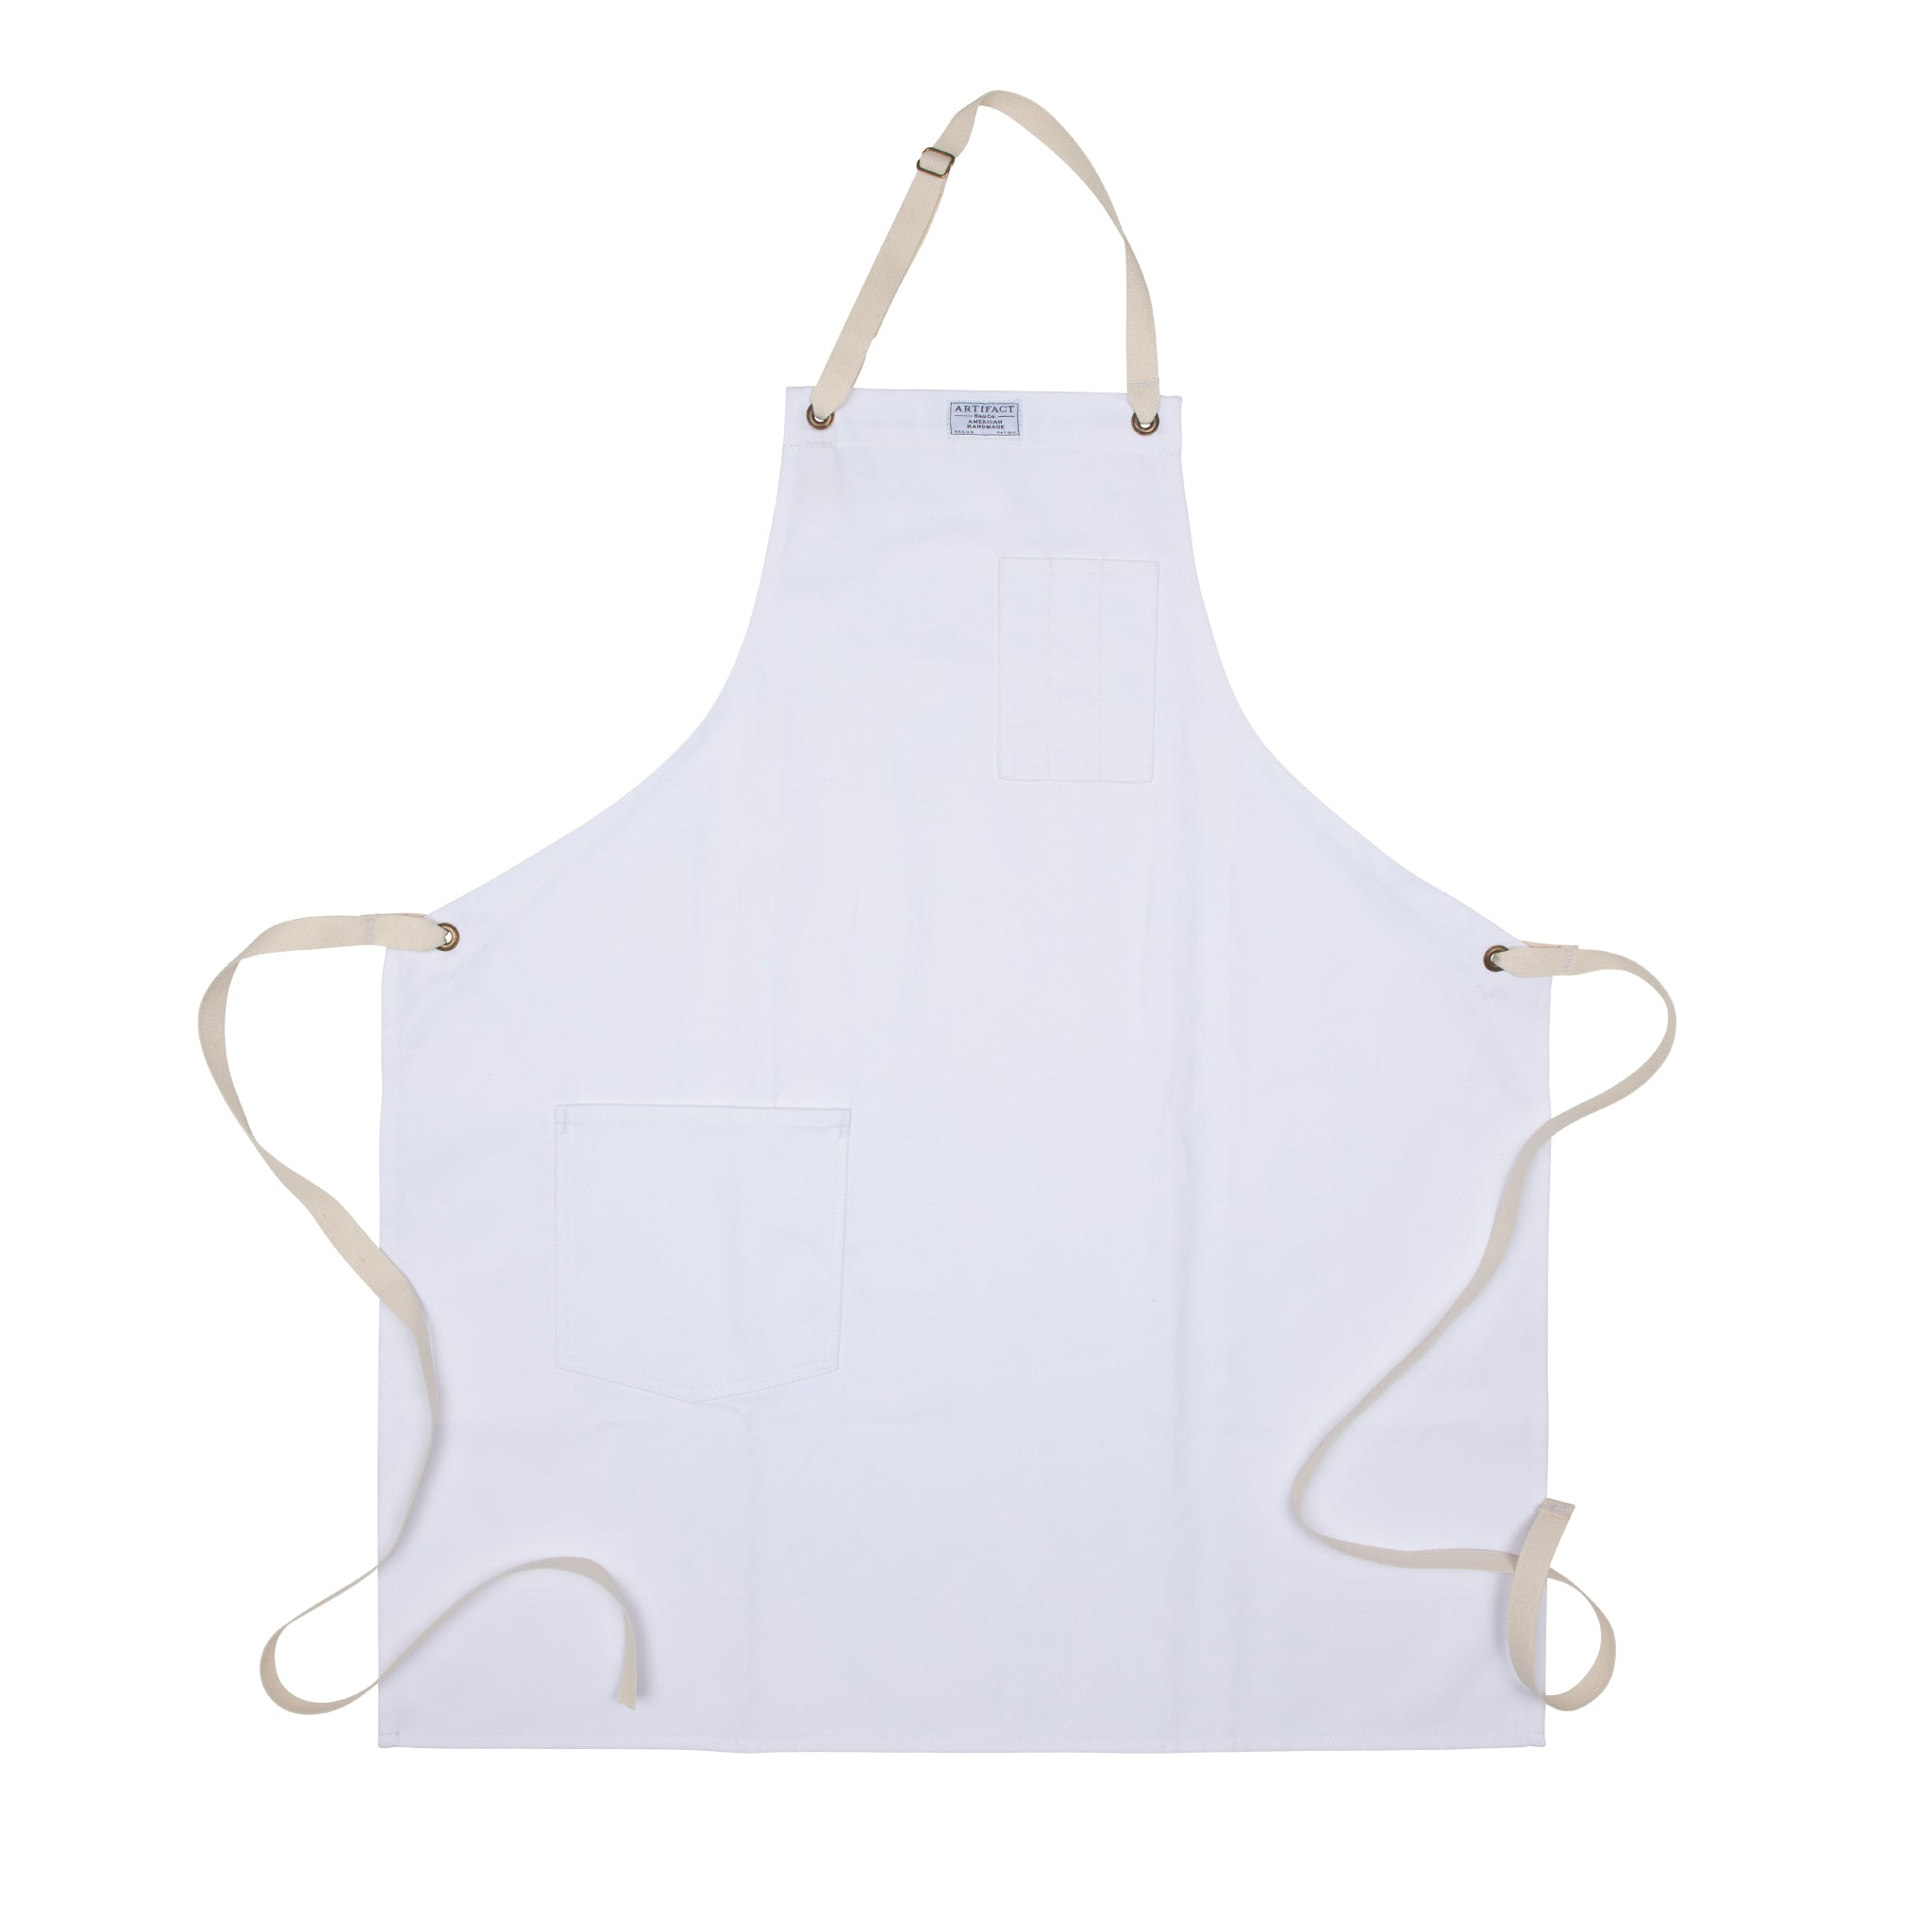 Artifact White Brushed Twill Apron w/ Cotton Neck Slider